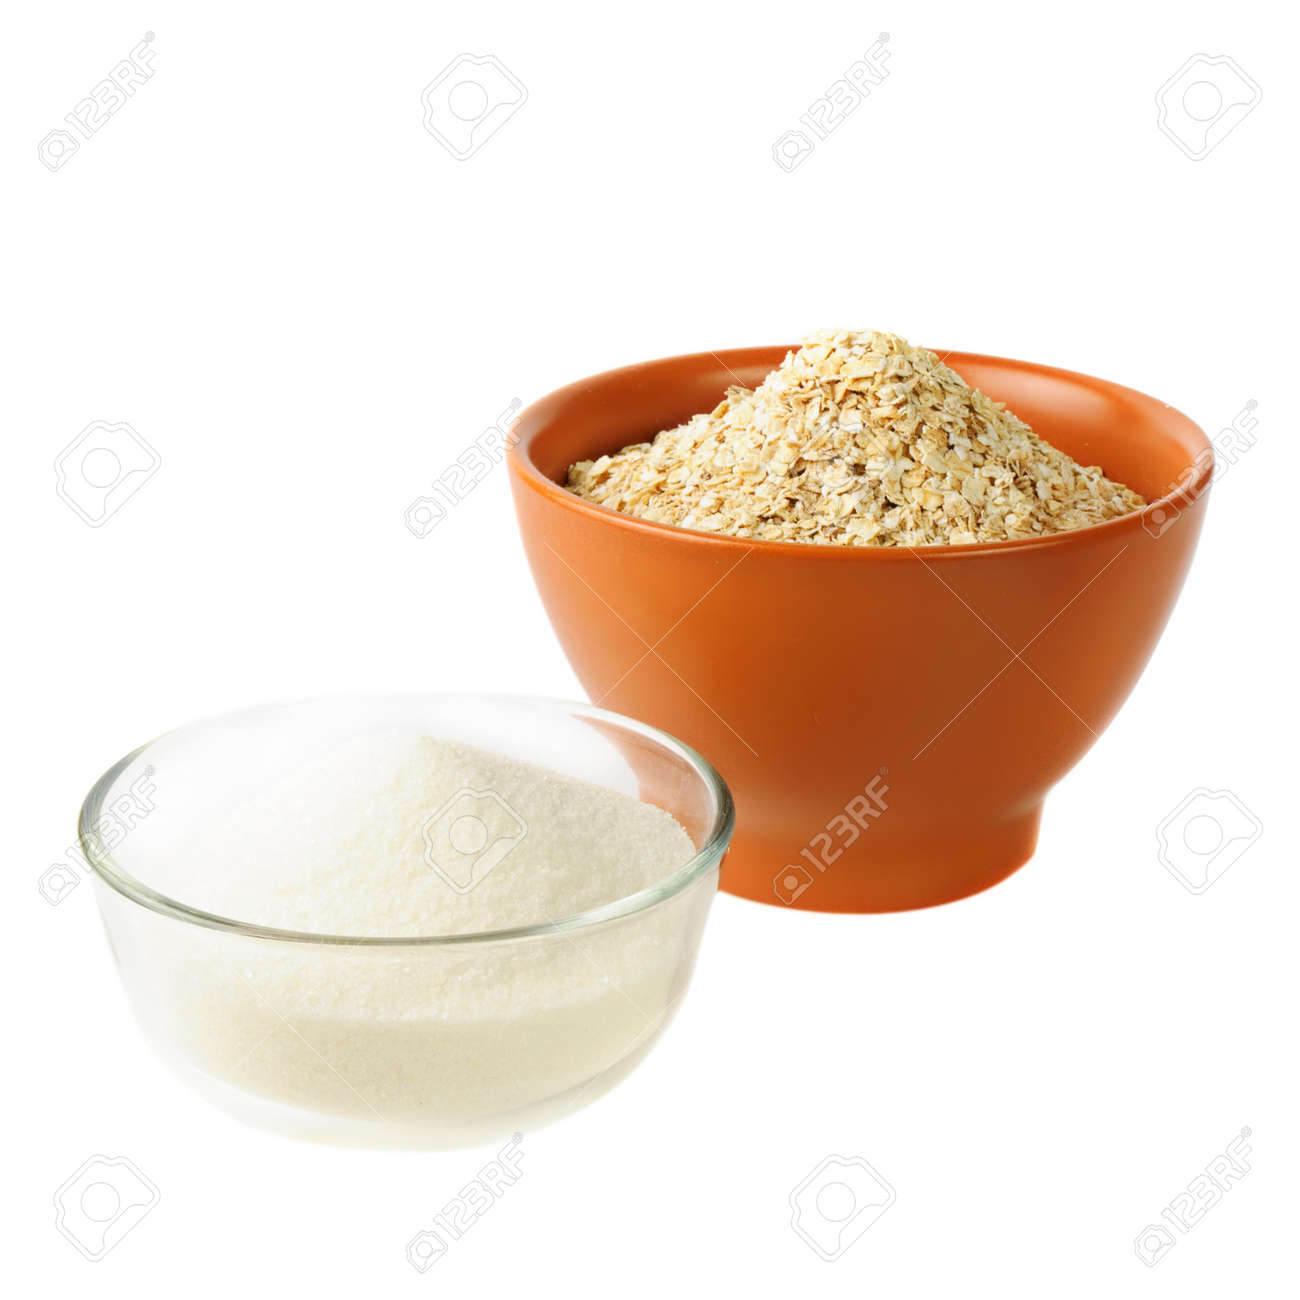 oat and sugar: carbohydrate foods Stock Photo - 10438524